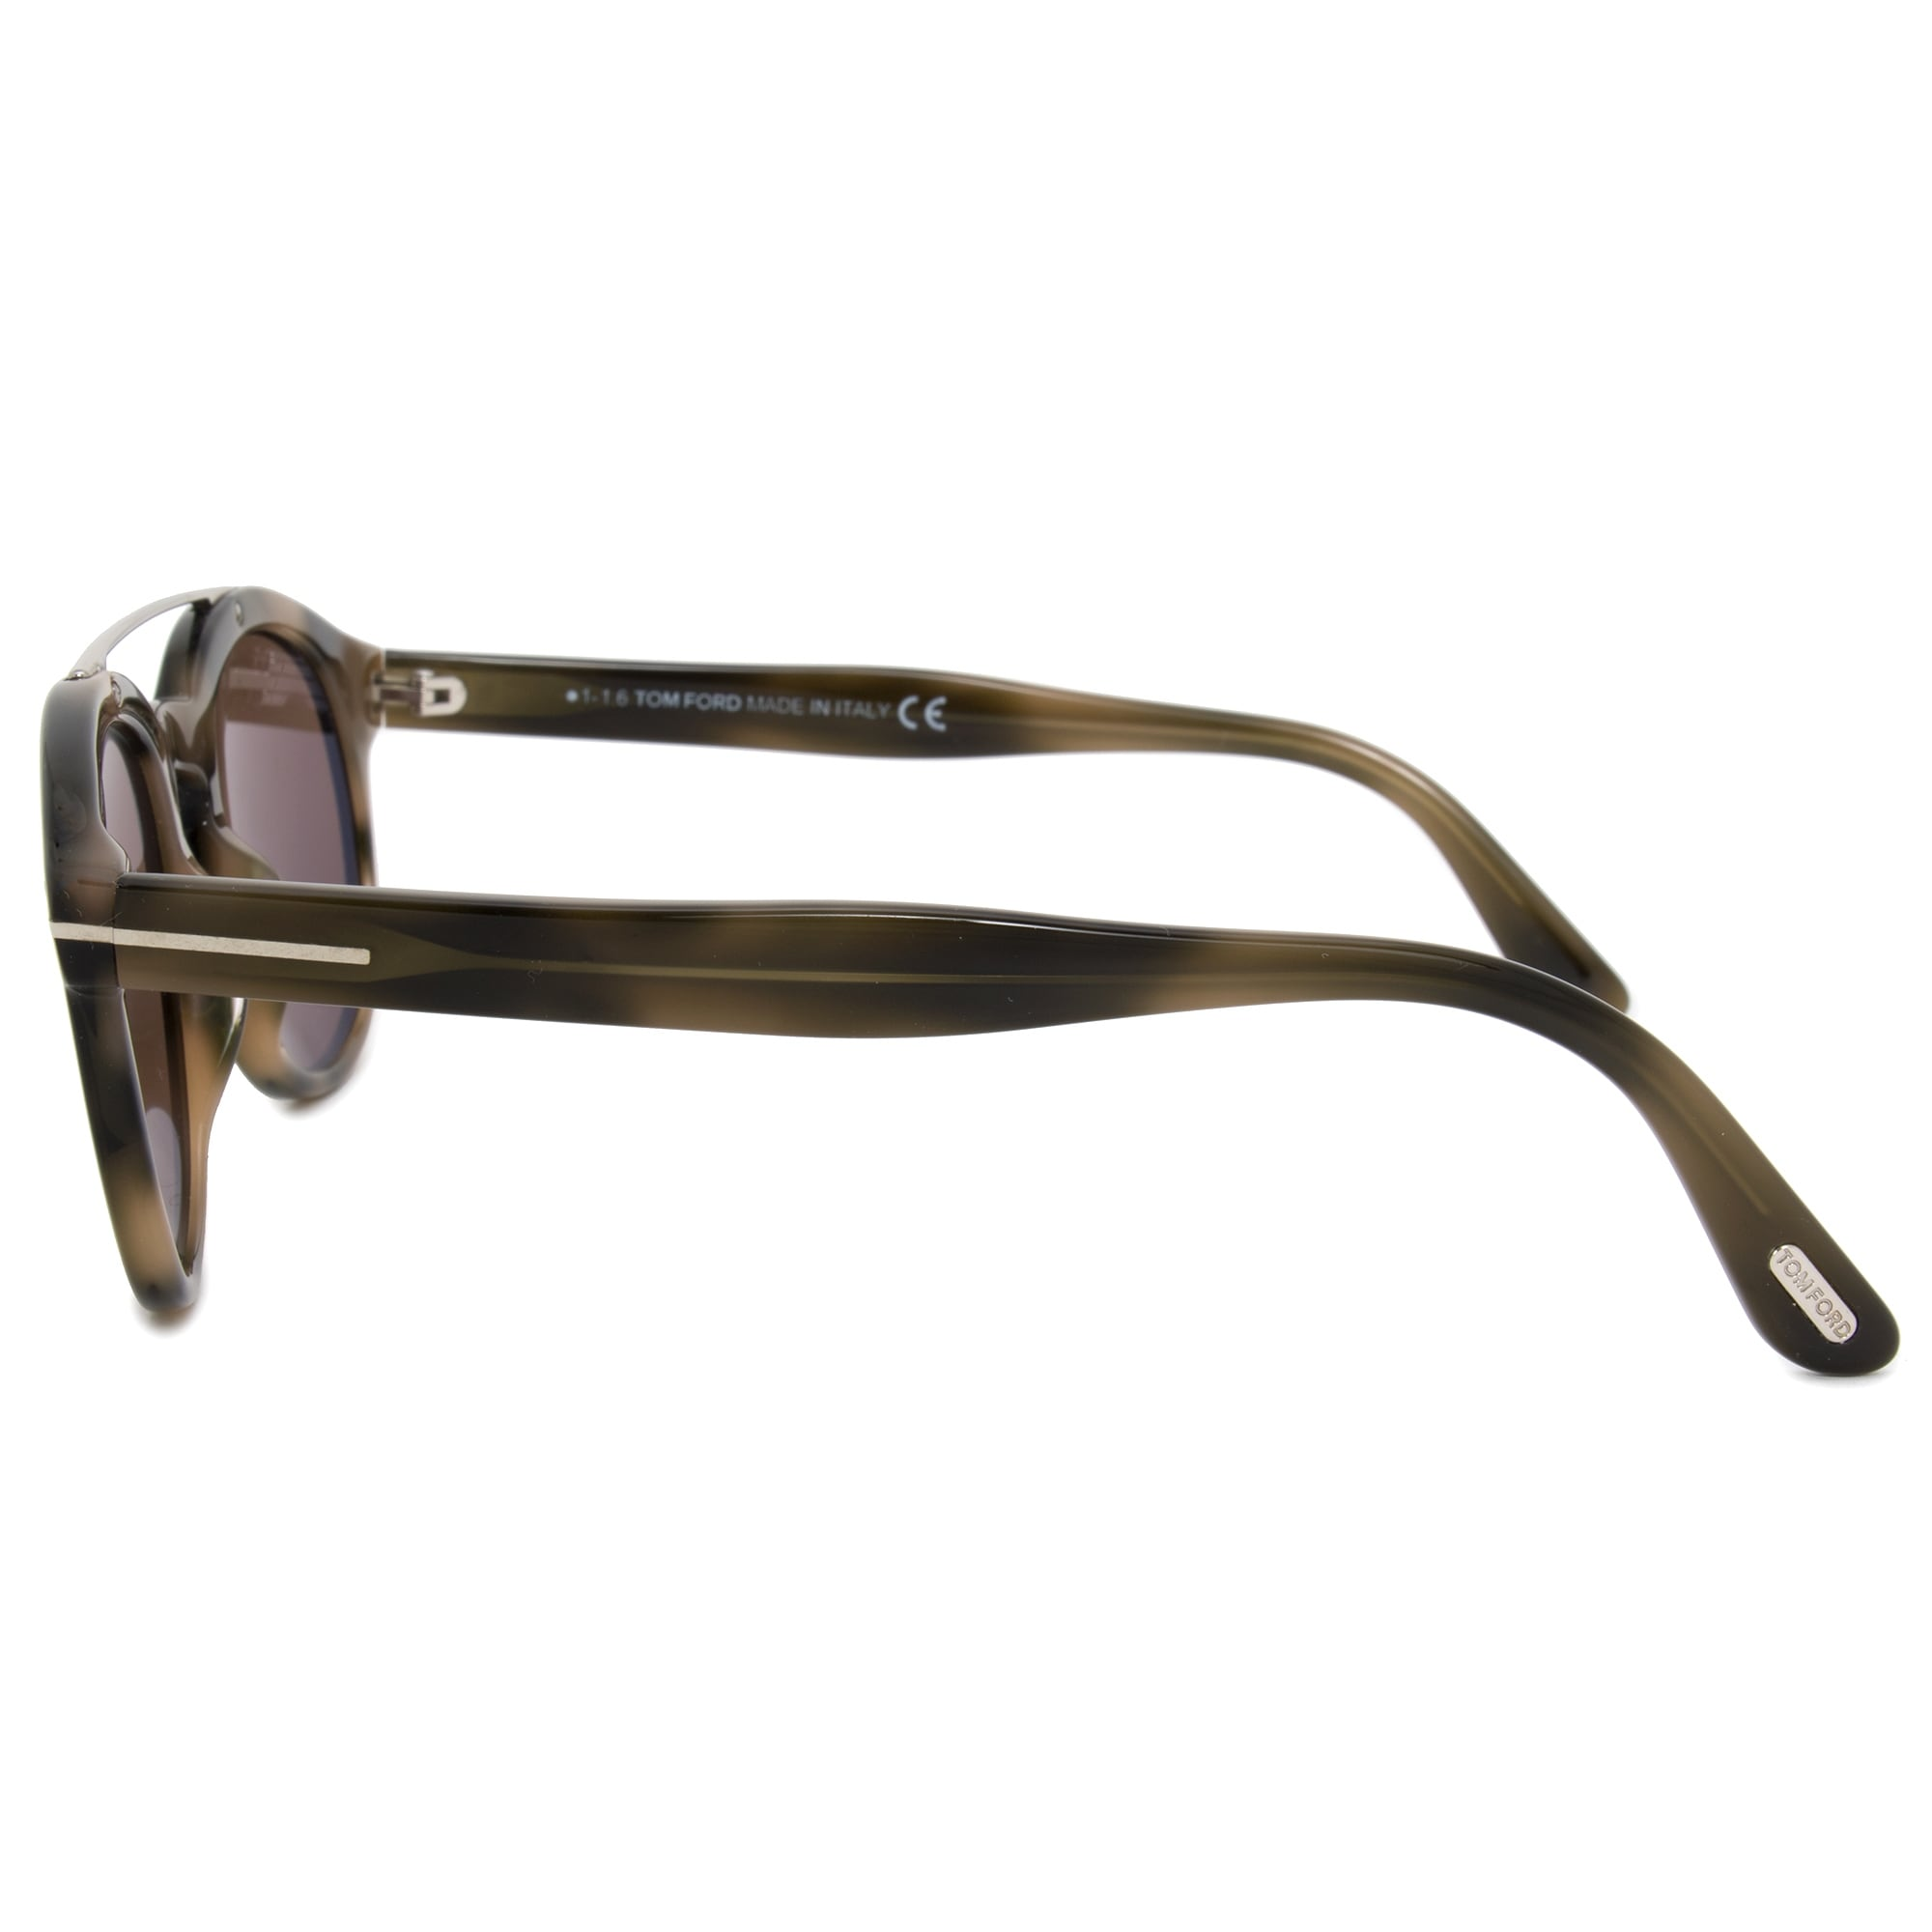 678e4a272c Shop Tom Ford Newman Round Sunglasses FT0515 55E 53 - Ships To Canada -  Overstock - 21408784